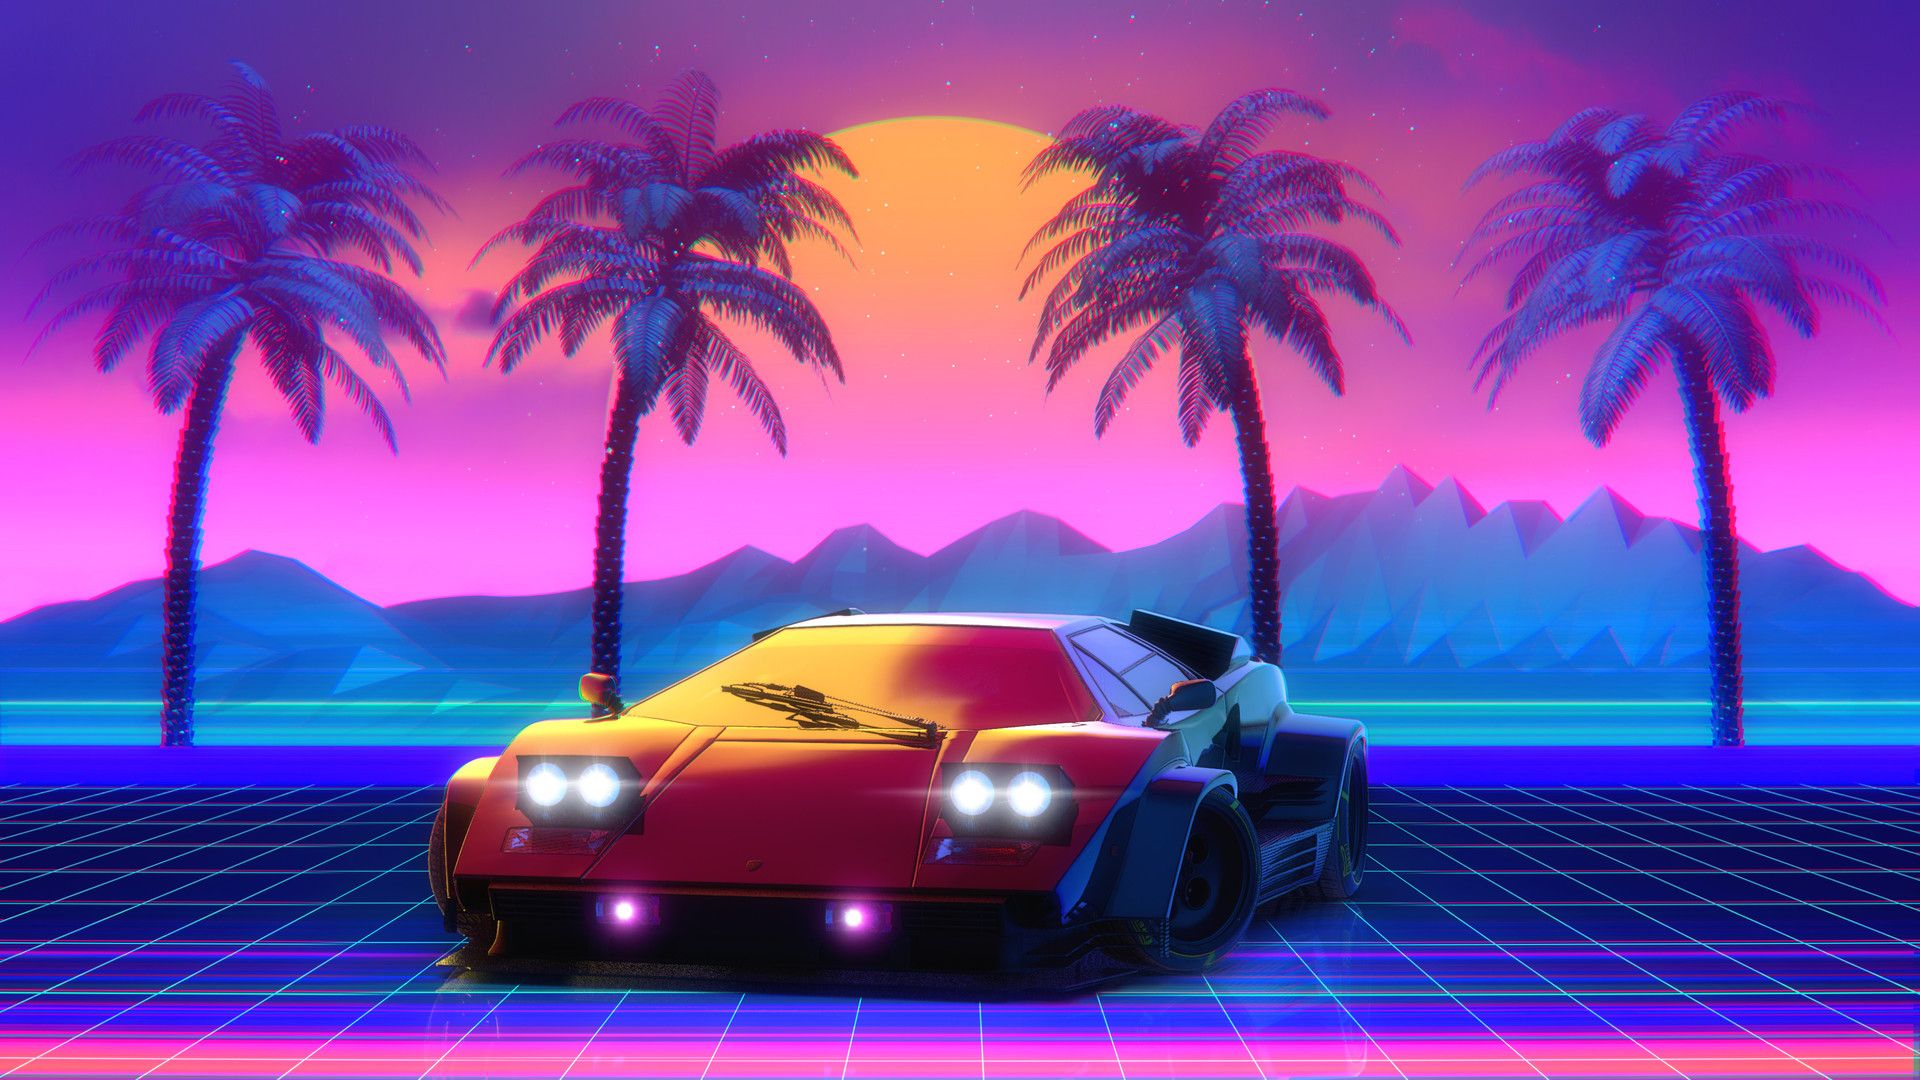 Synthwave / Countach / Palm trees / Sun